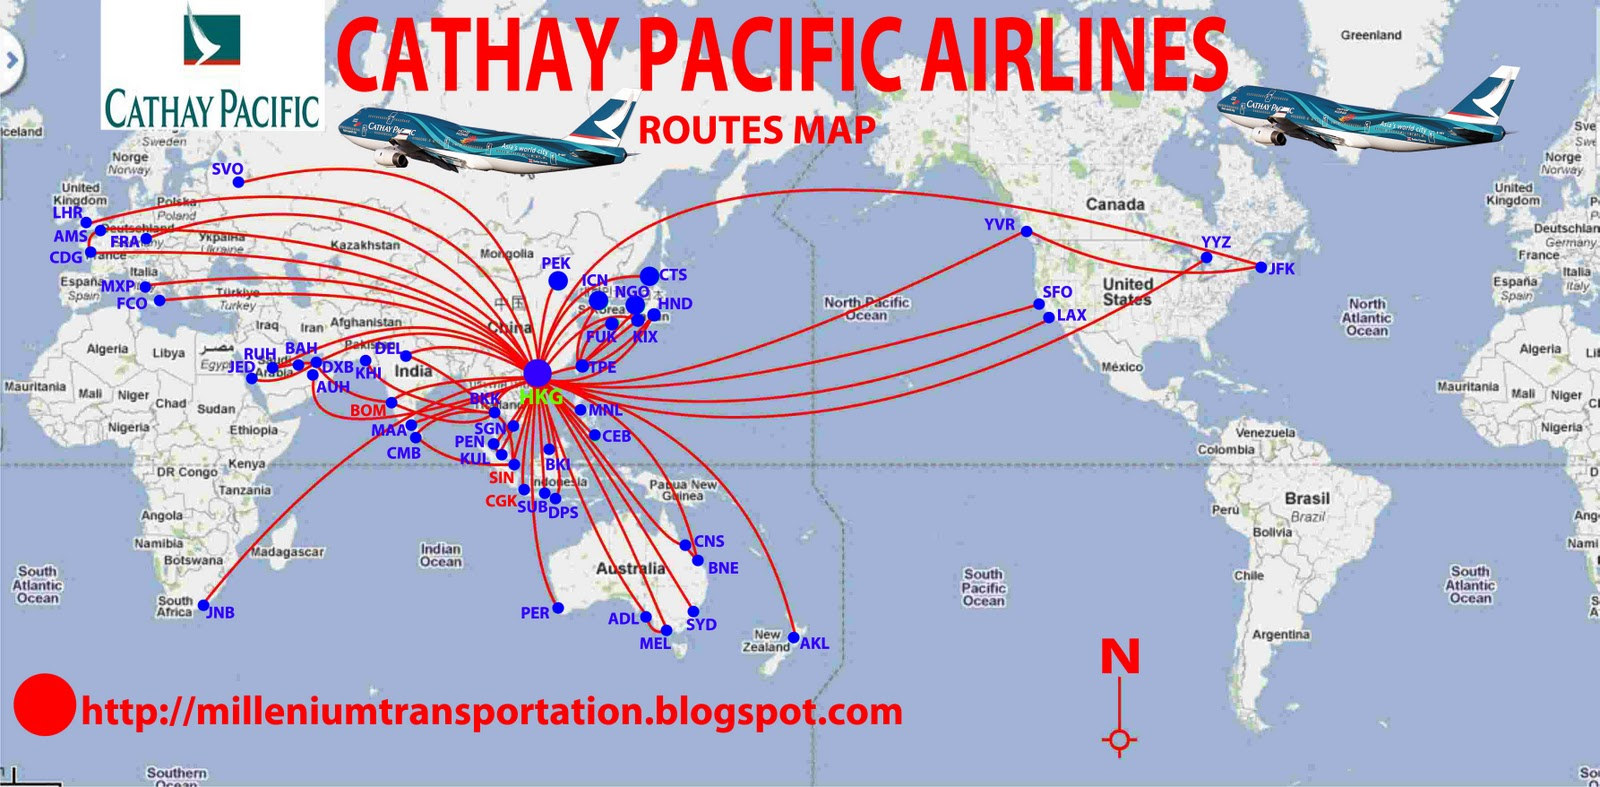 cathay pacific routes map cathay pacific airways routes map